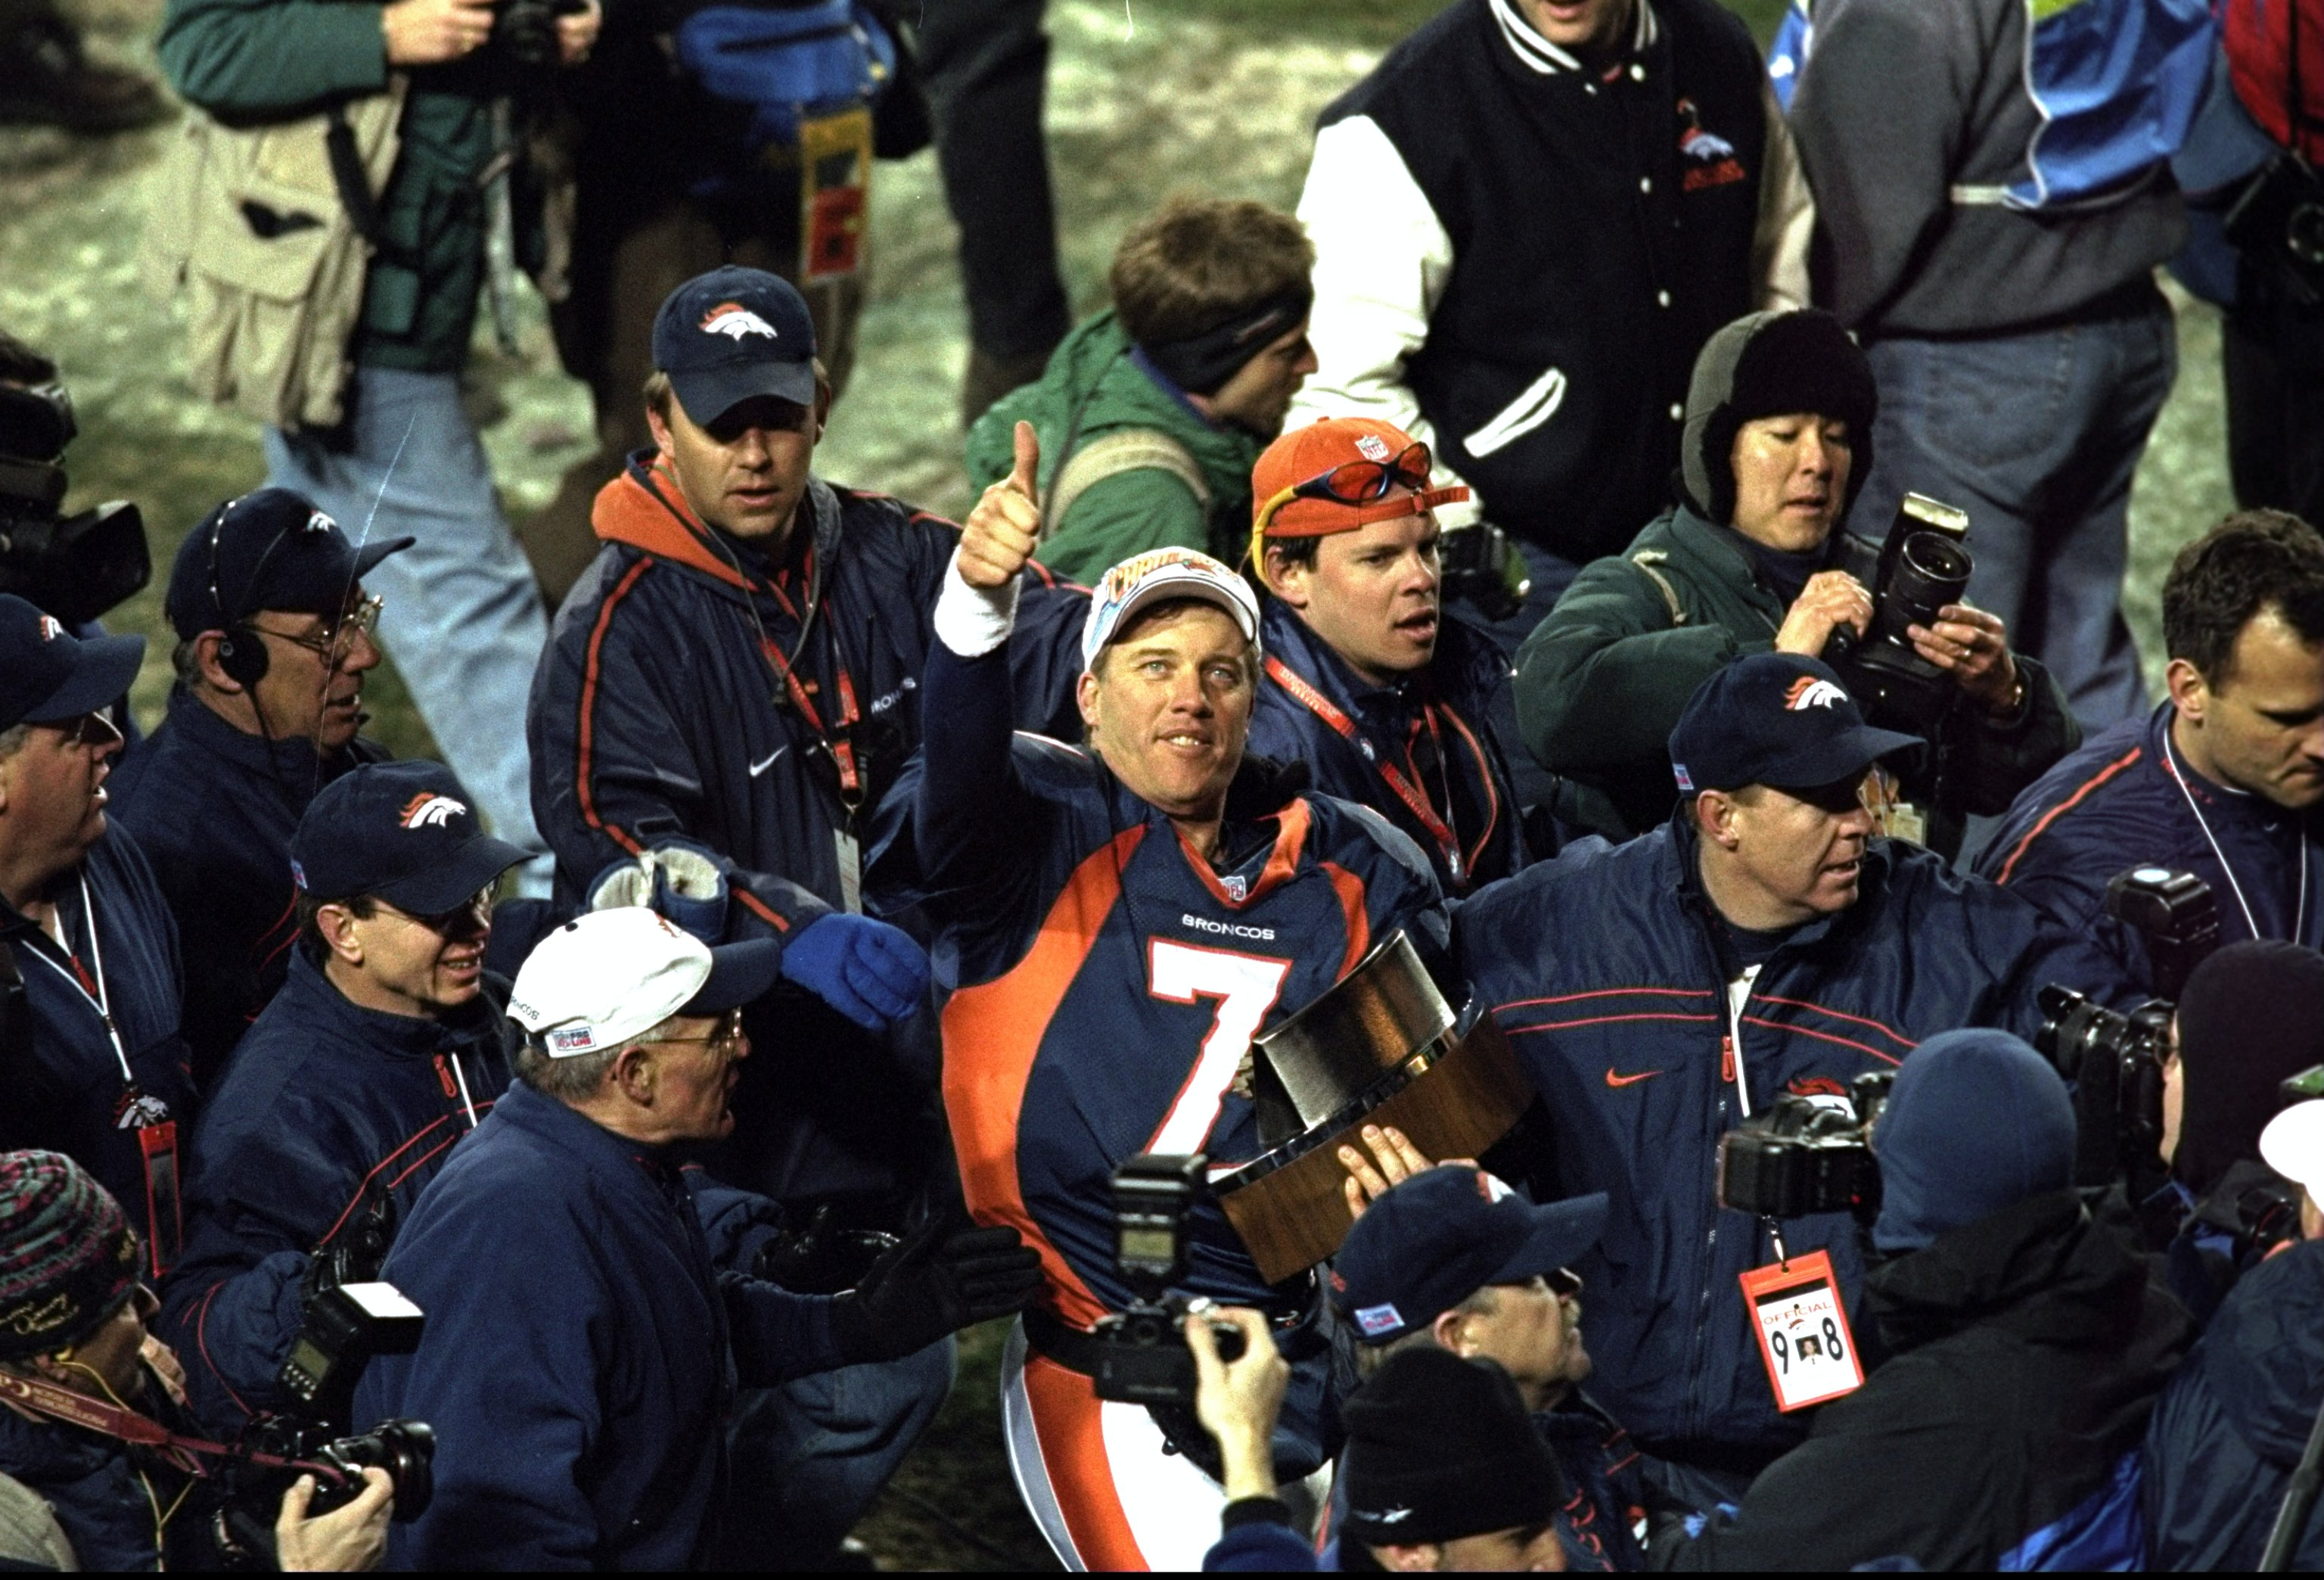 17 Jan 1999:  John Elway #7 of the Denver Broncos gives a thumbs up after winning the AFC Championship Game against the New York Jets at Mile High Stadium in Denver, Colorado. The Broncos defeated the Jets 23-10. Mandatory Credit: Tom Hauck  /Allsport